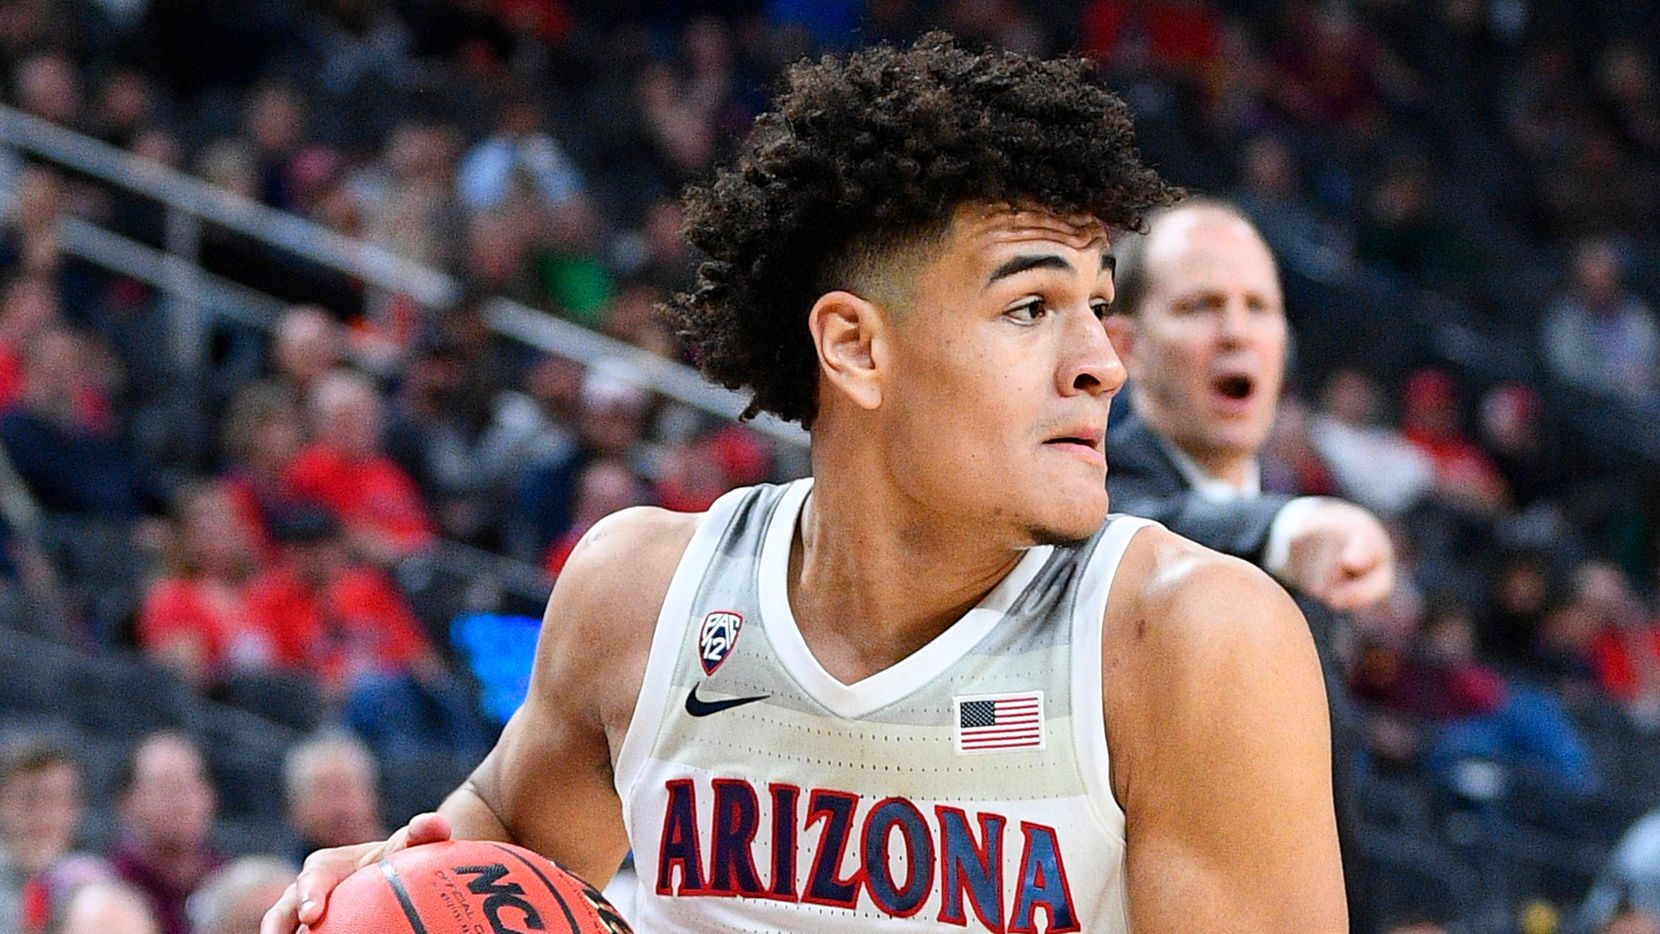 LAS VEGAS, NV - MARCH 11: Arizona Wildcats guard Josh Green (0) looks to make a pass during the first round game of the men's Pac-12 Tournament between the Arizona Wildcats and the Washington Huskies on March 11, 2020, at the T-Mobile Arena in Las Vegas, NV.